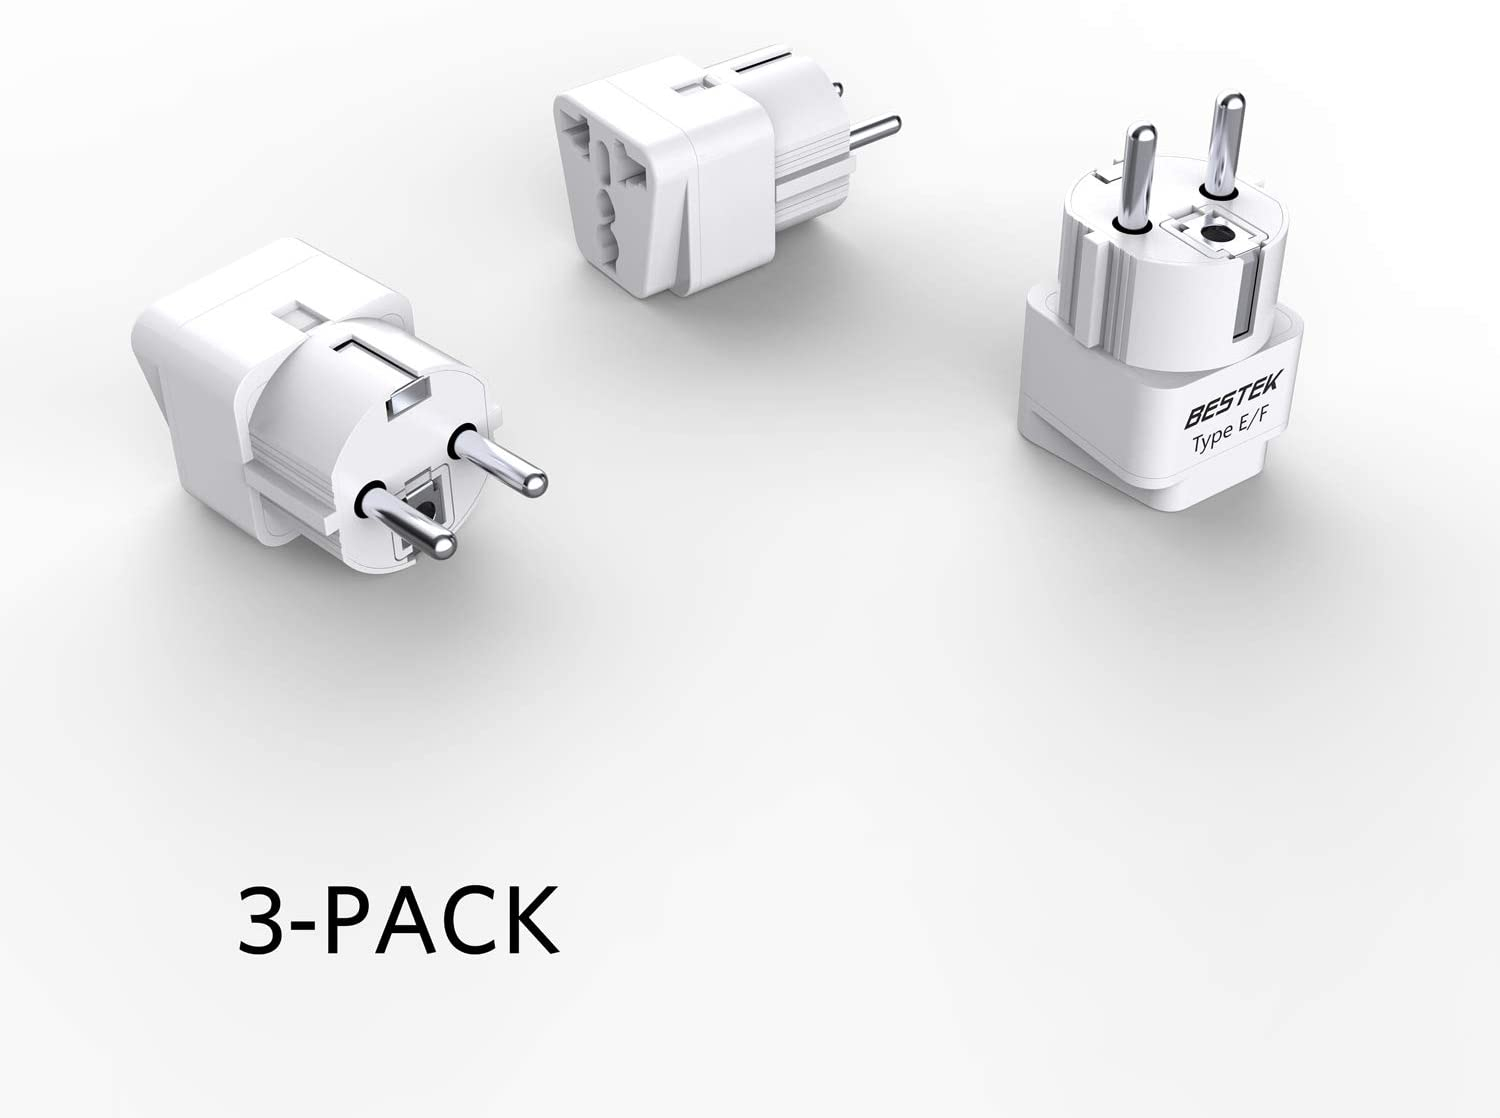 BESTEK Europe Travel Plug Adapter, Grounded Universal Type E/F Plug Adapter EU to US Adapter - Ultra Compact for Most of Europe, Asia Countries and More, 3 Pack